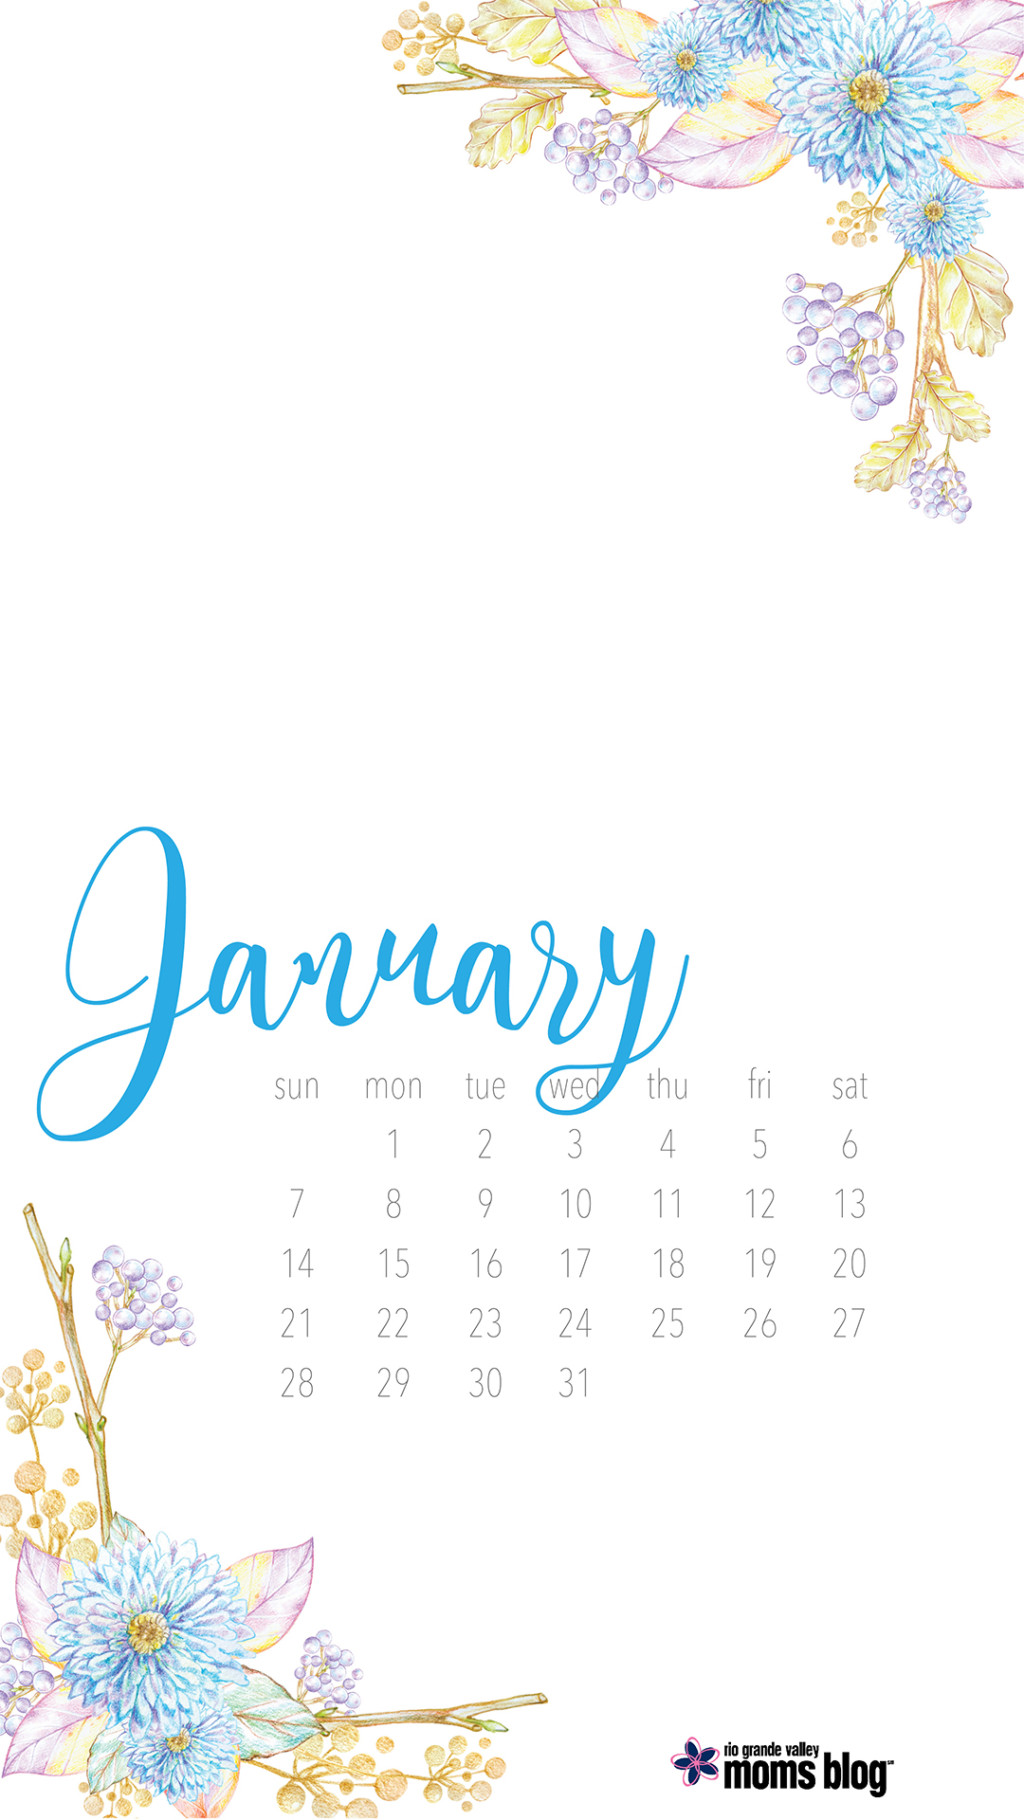 January Calendar 2018 iphone screensaver